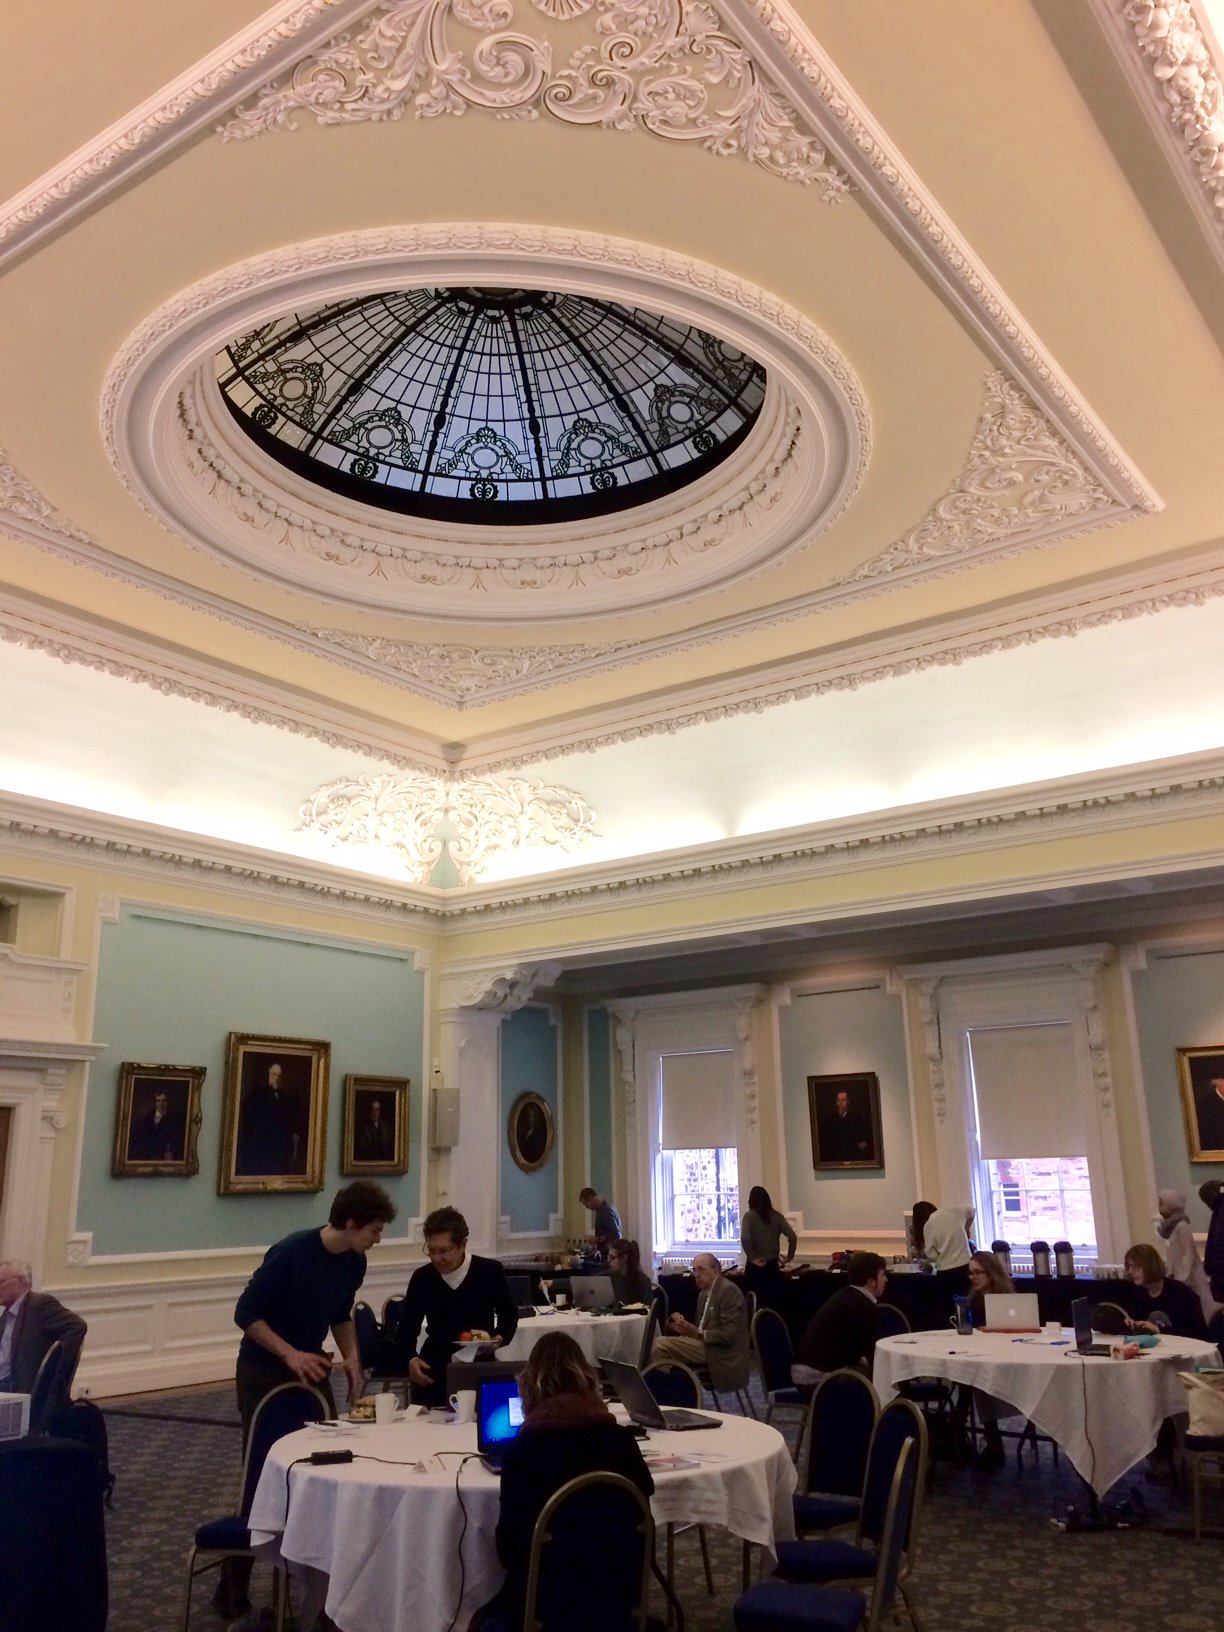 Still time to join us for day 2 of the History of Medicine editahon in the beautiful @surgeonshall https://t.co/mzpZlbJnej #histmed3 #fcl17 https://t.co/g7KxbGd4t3